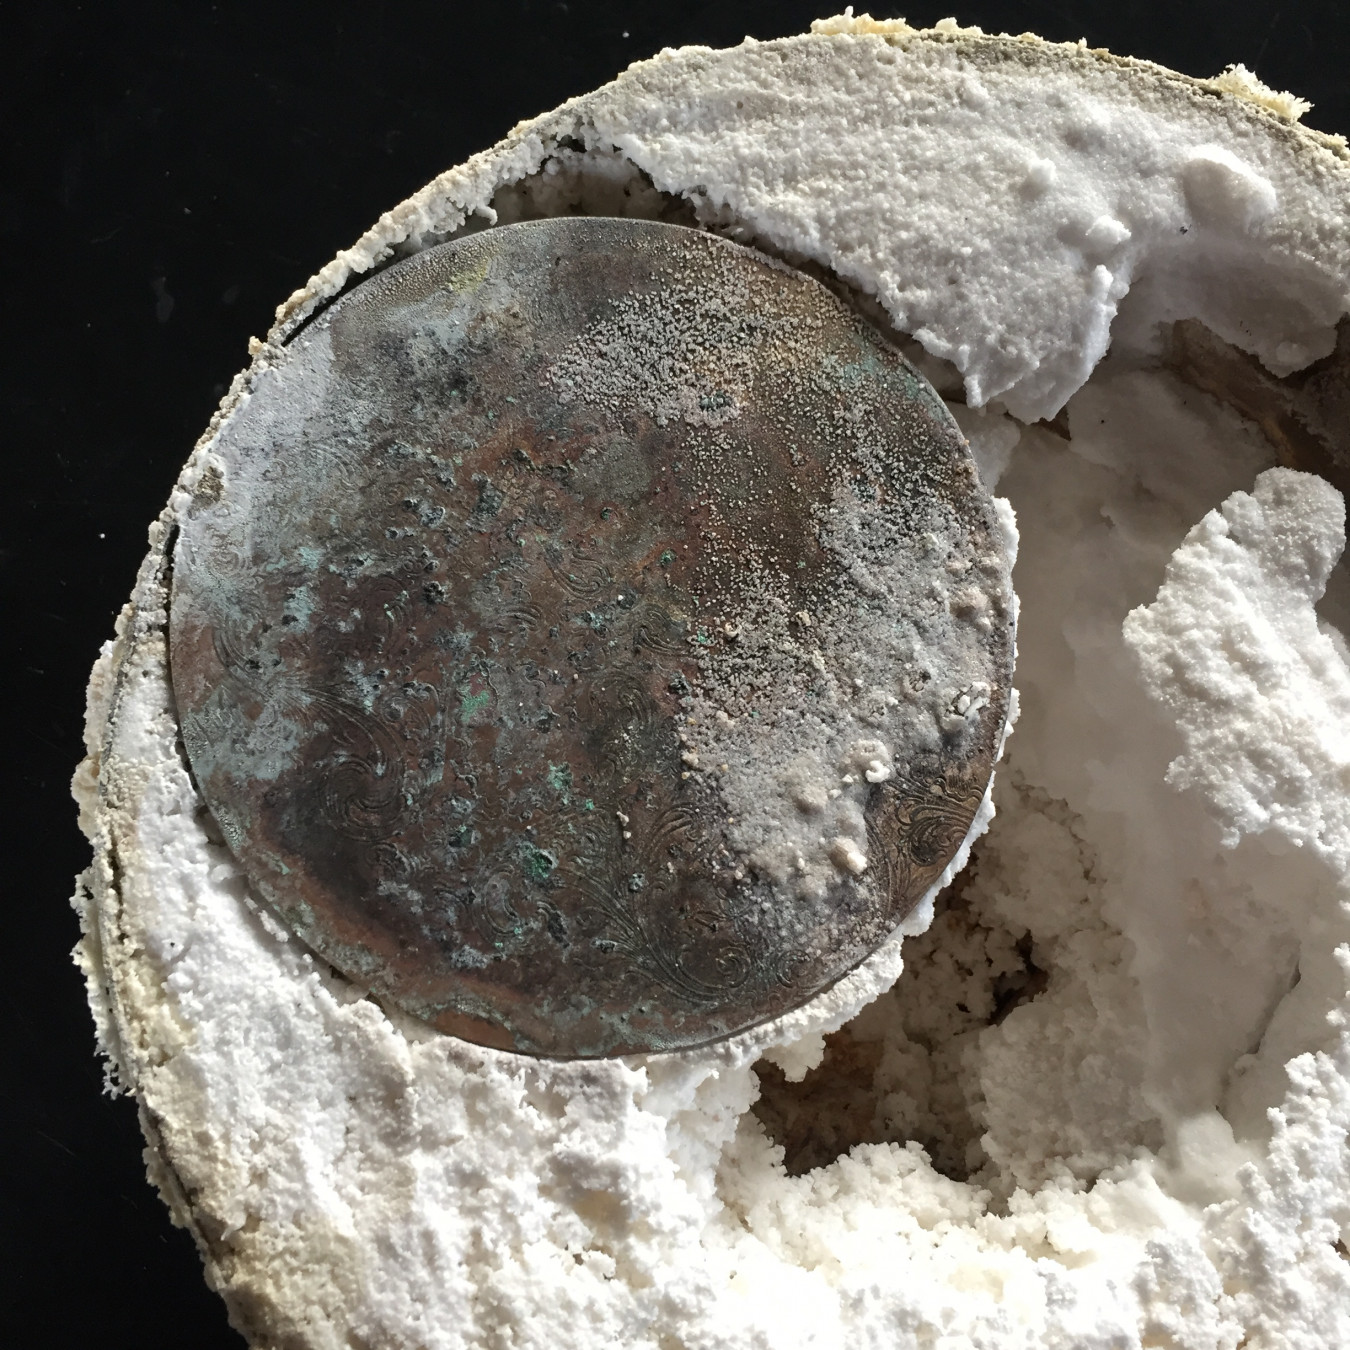 Image of silver donations that have been baked with common table salt to create large salt cellar.